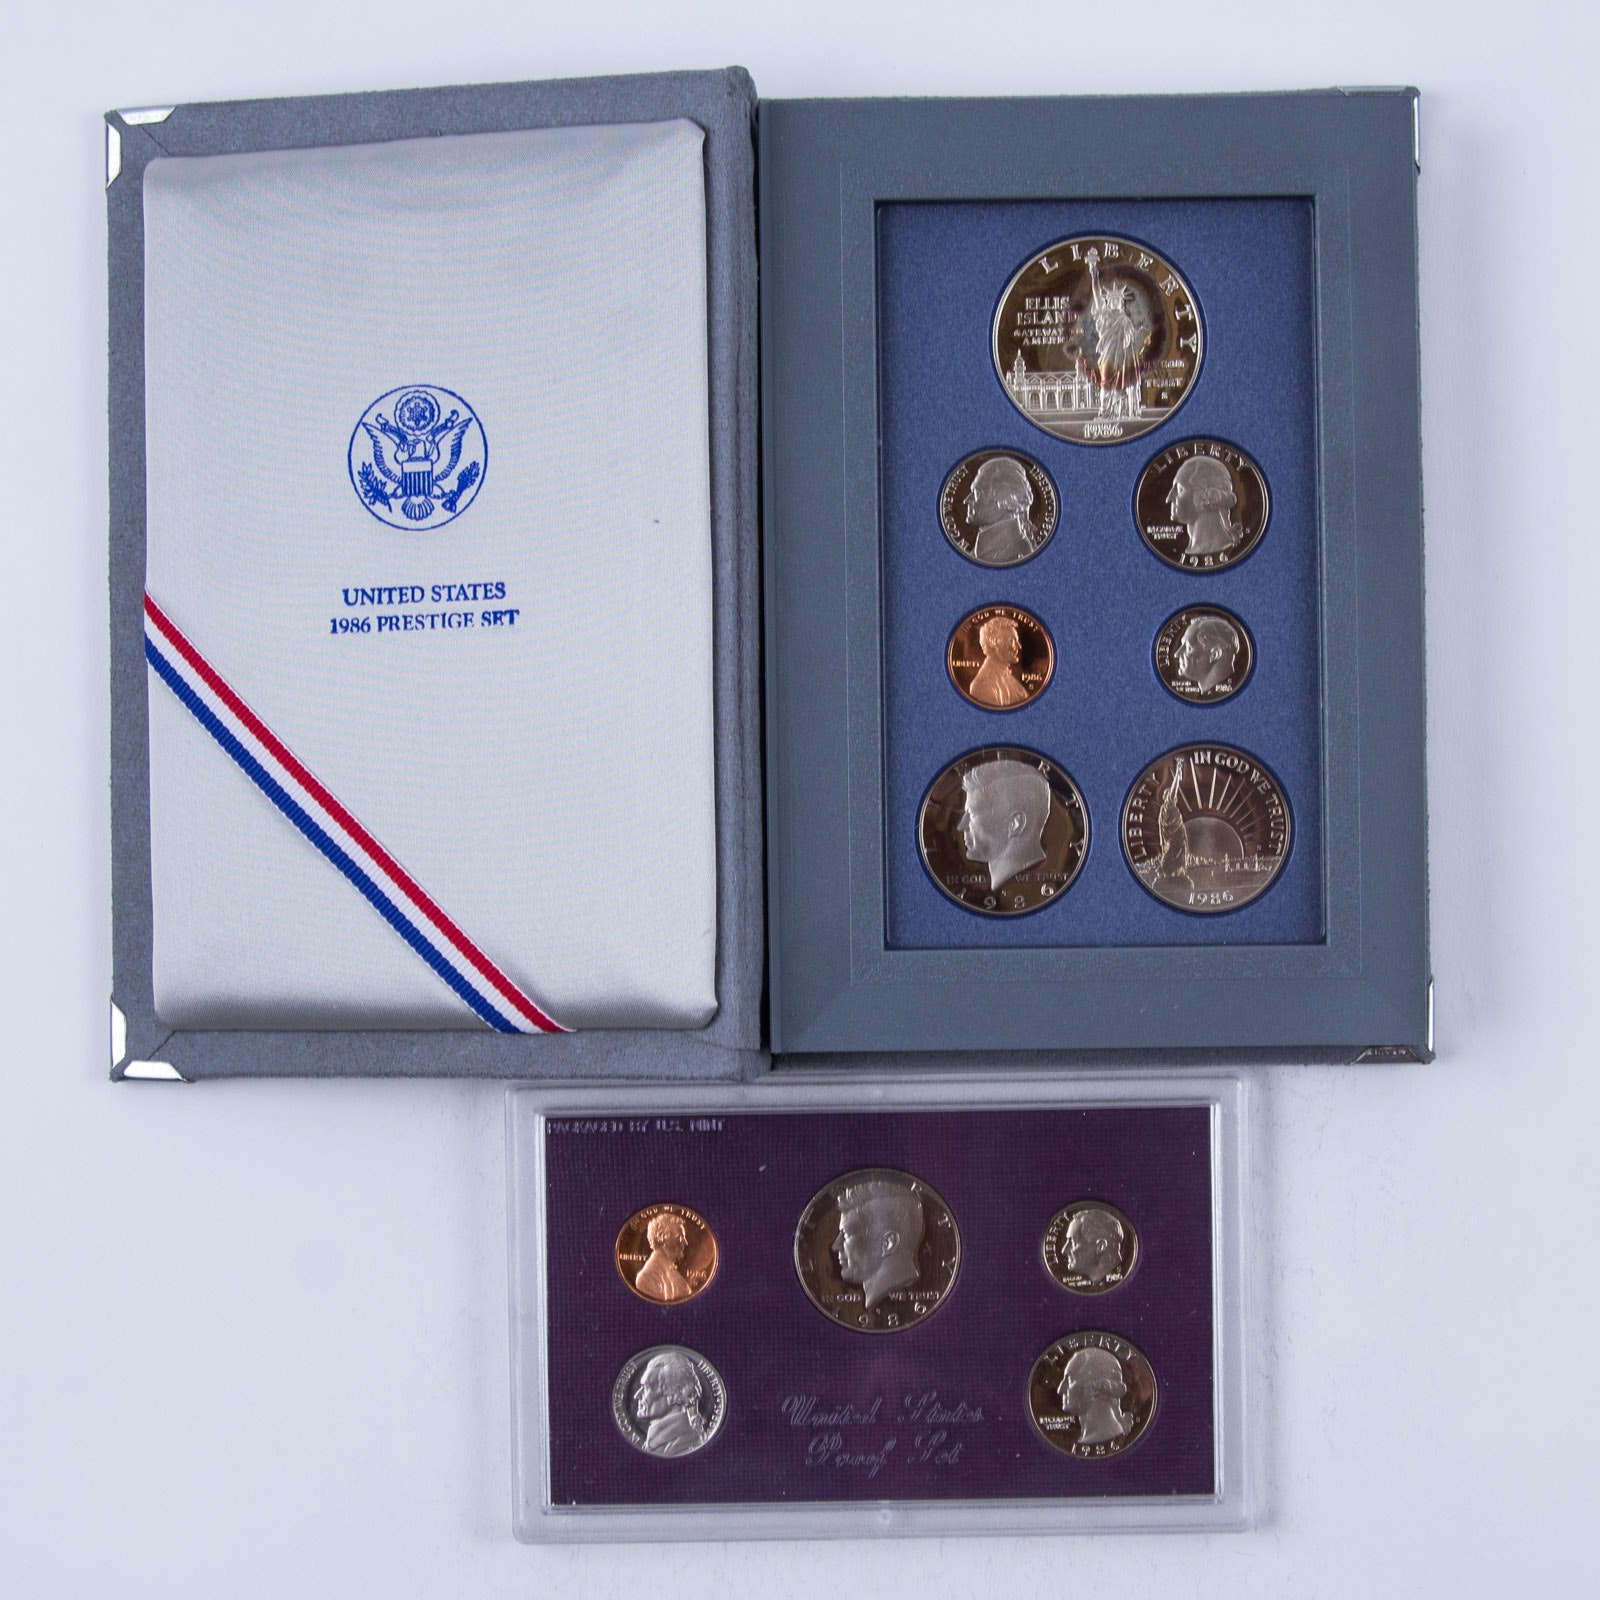 1986 United States Prestige and Proof Sets